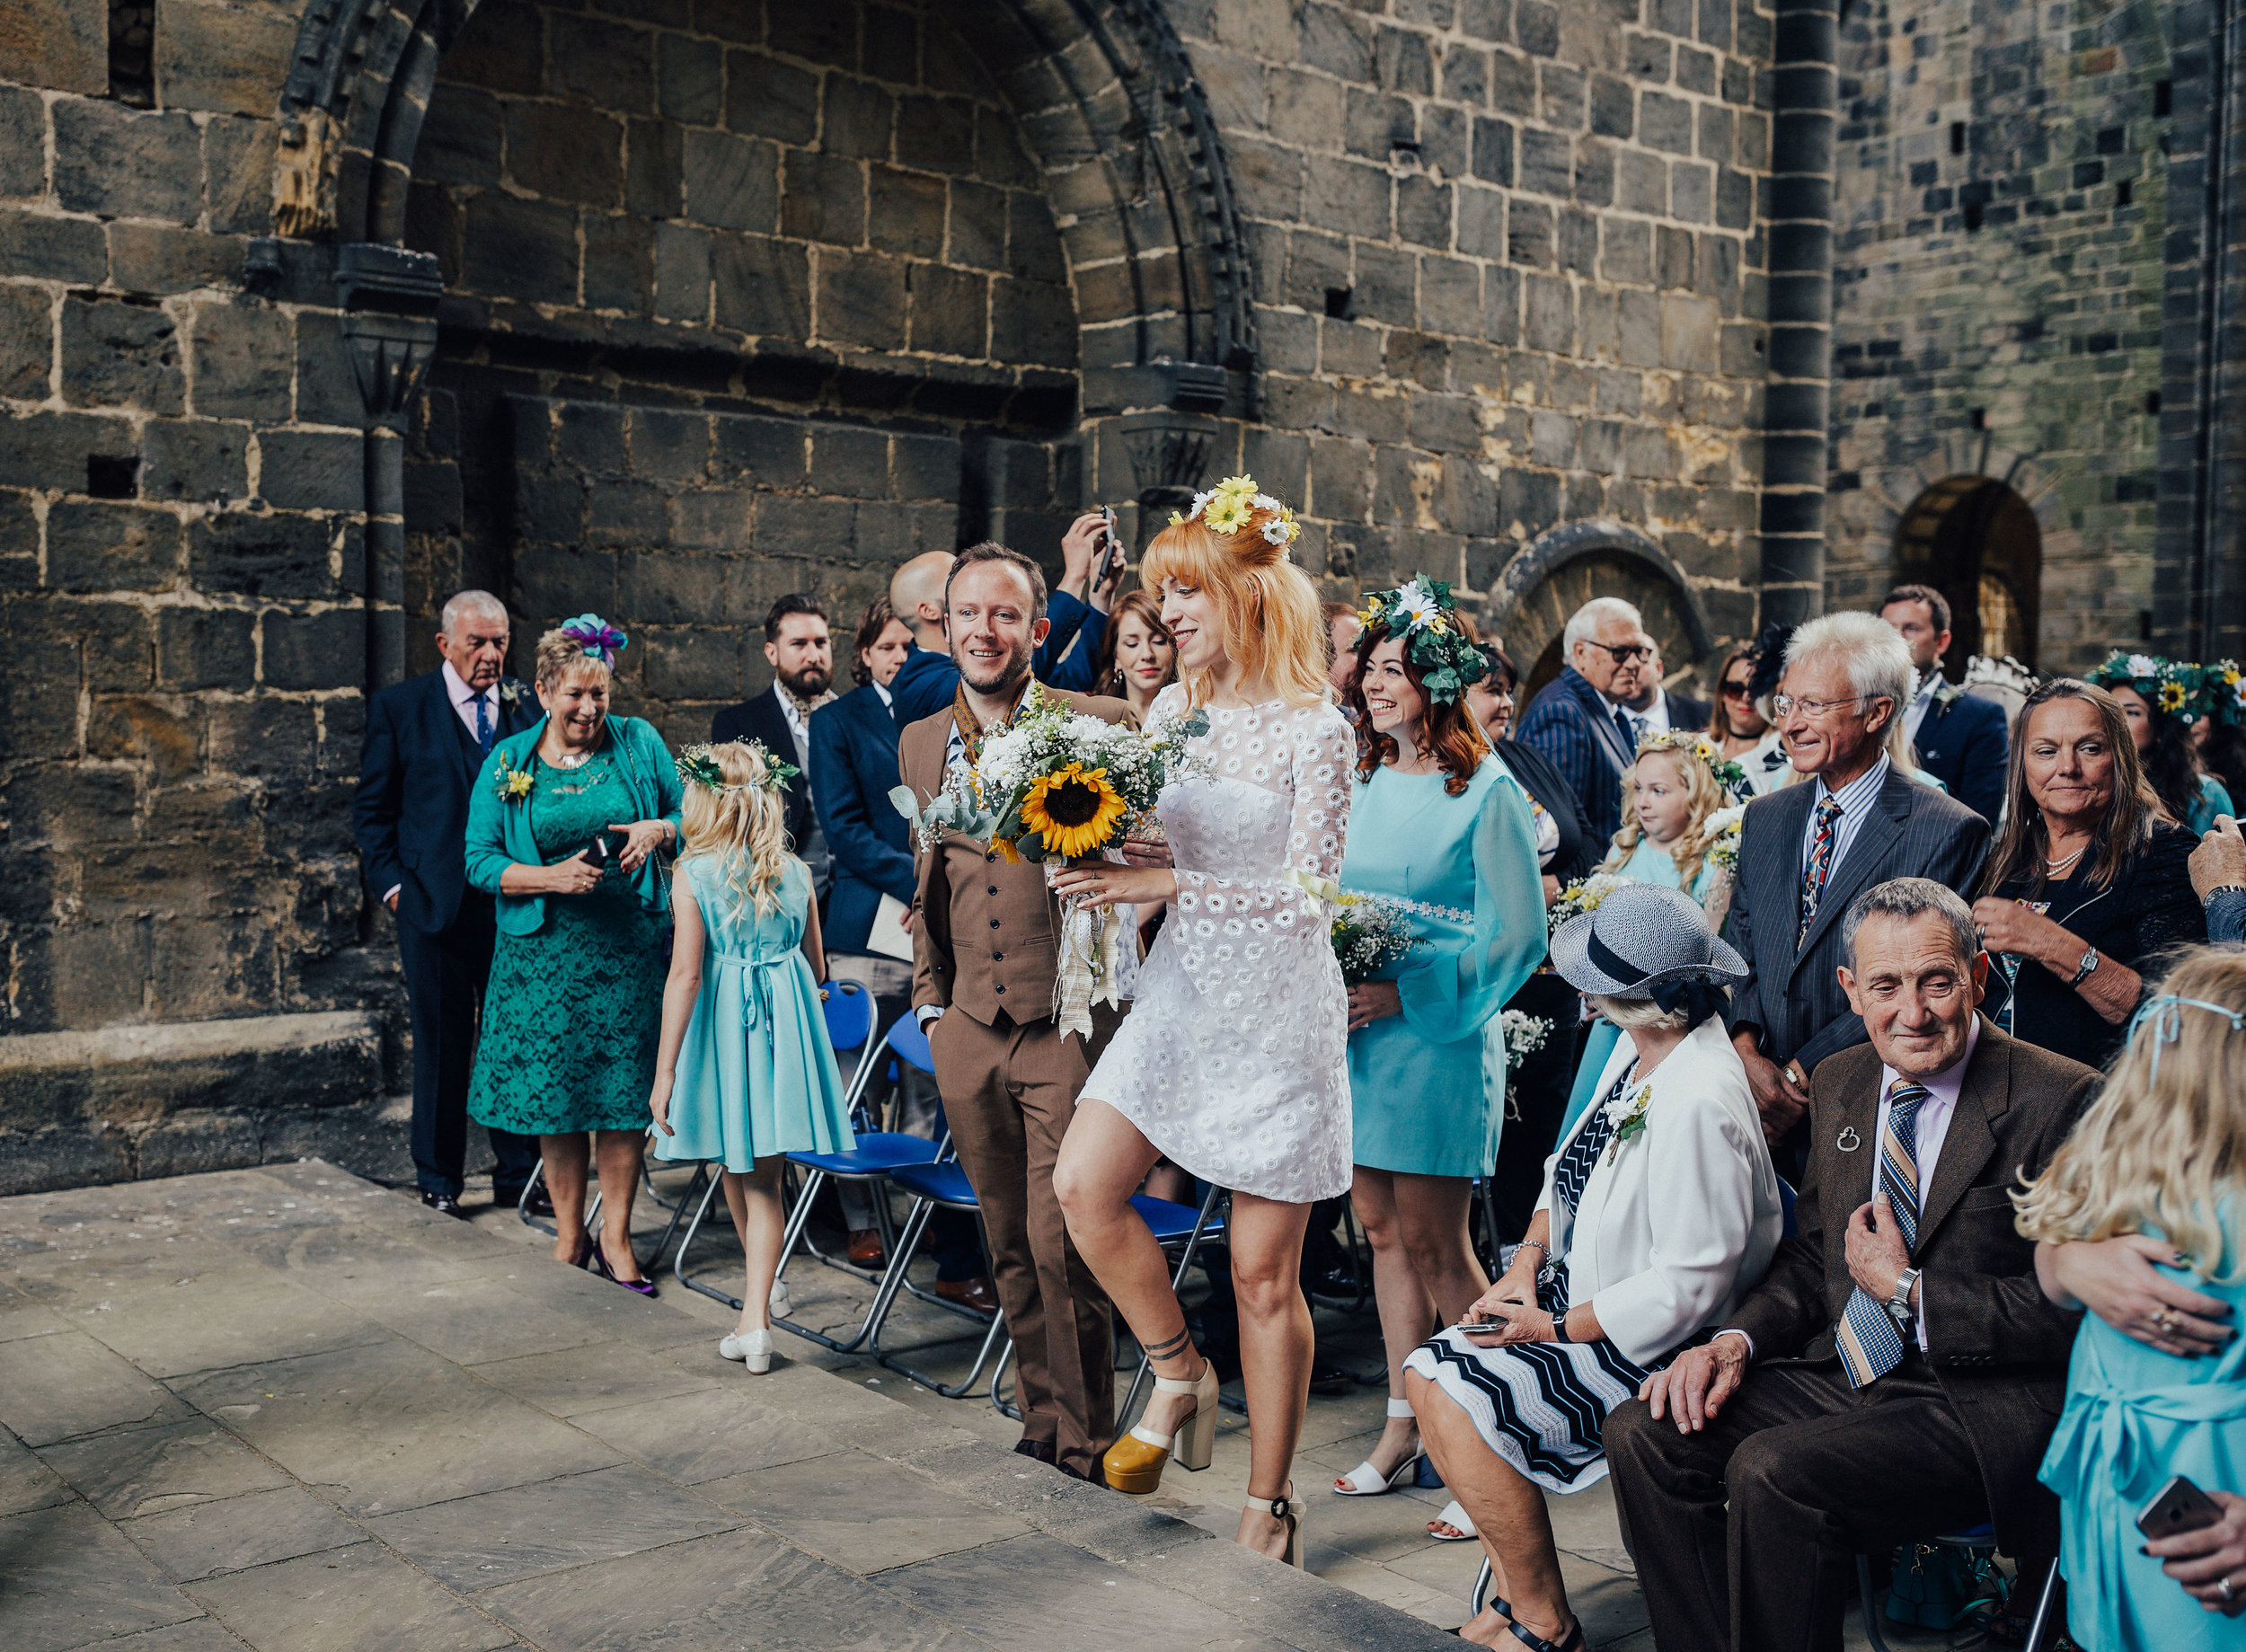 ALTERNATIVE_WEDDING_PHOTOGRAPHY_LEEDS_UK_PJ_PHILLIPS_PHOTOGRAPHY_57.jpg